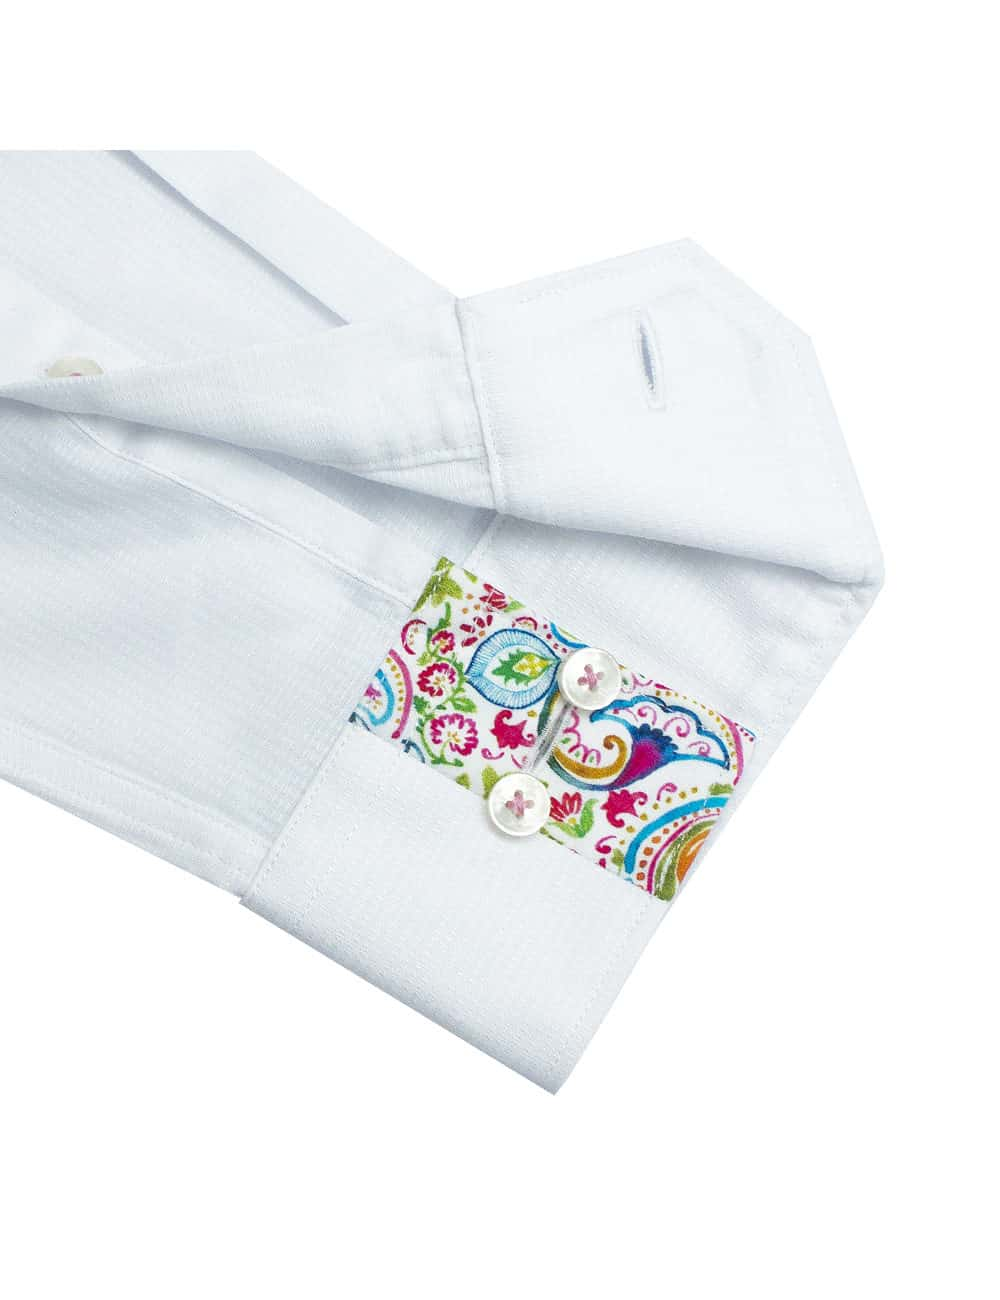 Tailored Fit Solid White Spill Resist Shirt with Vibrant SG Inspired Contrast TF2F1.18